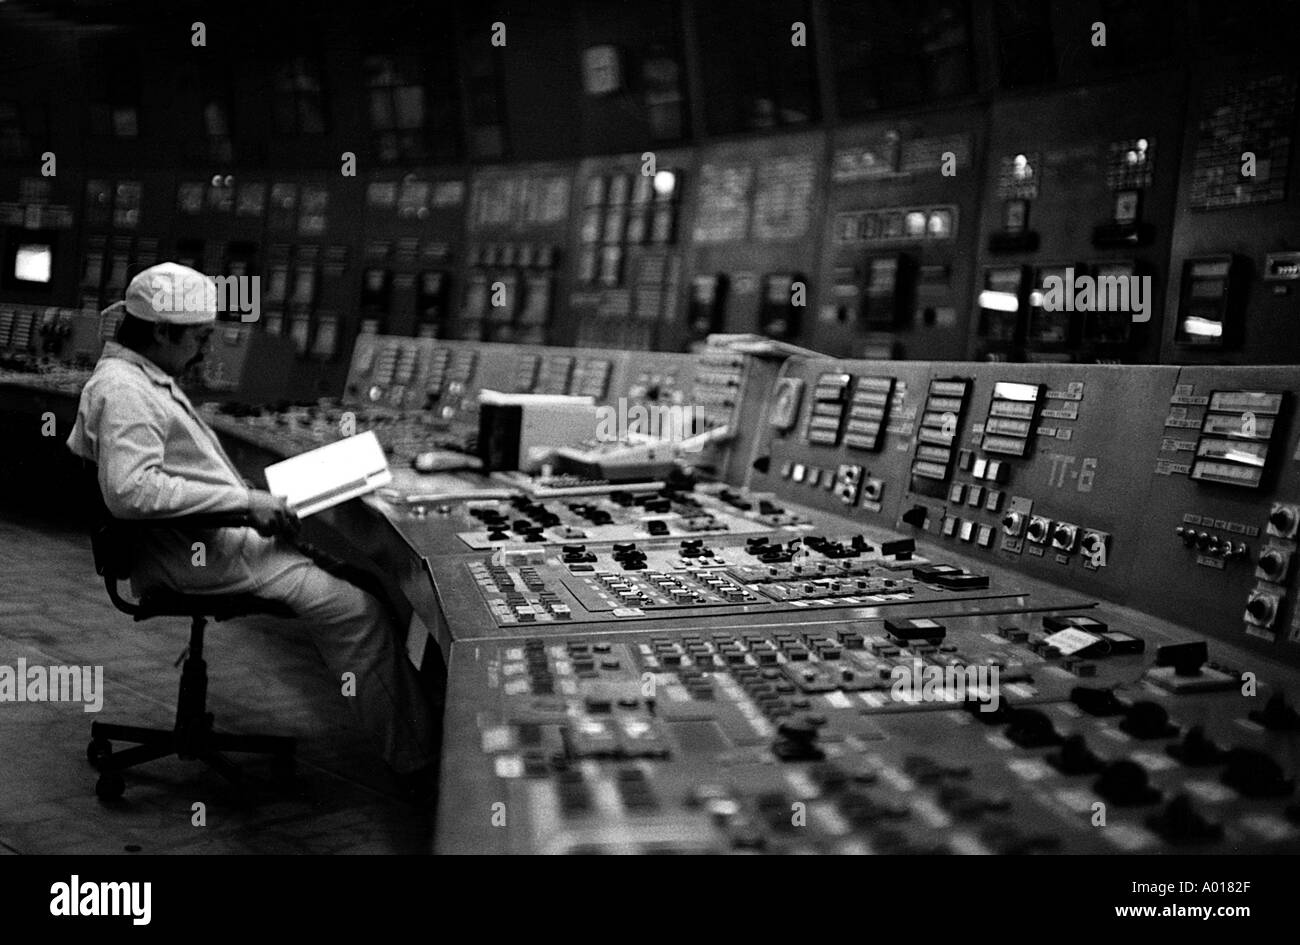 Man sitting at controls of Tschernobyl Nuclear Reactor  Chernobyl Kiev Ukraine Russia - Stock Image